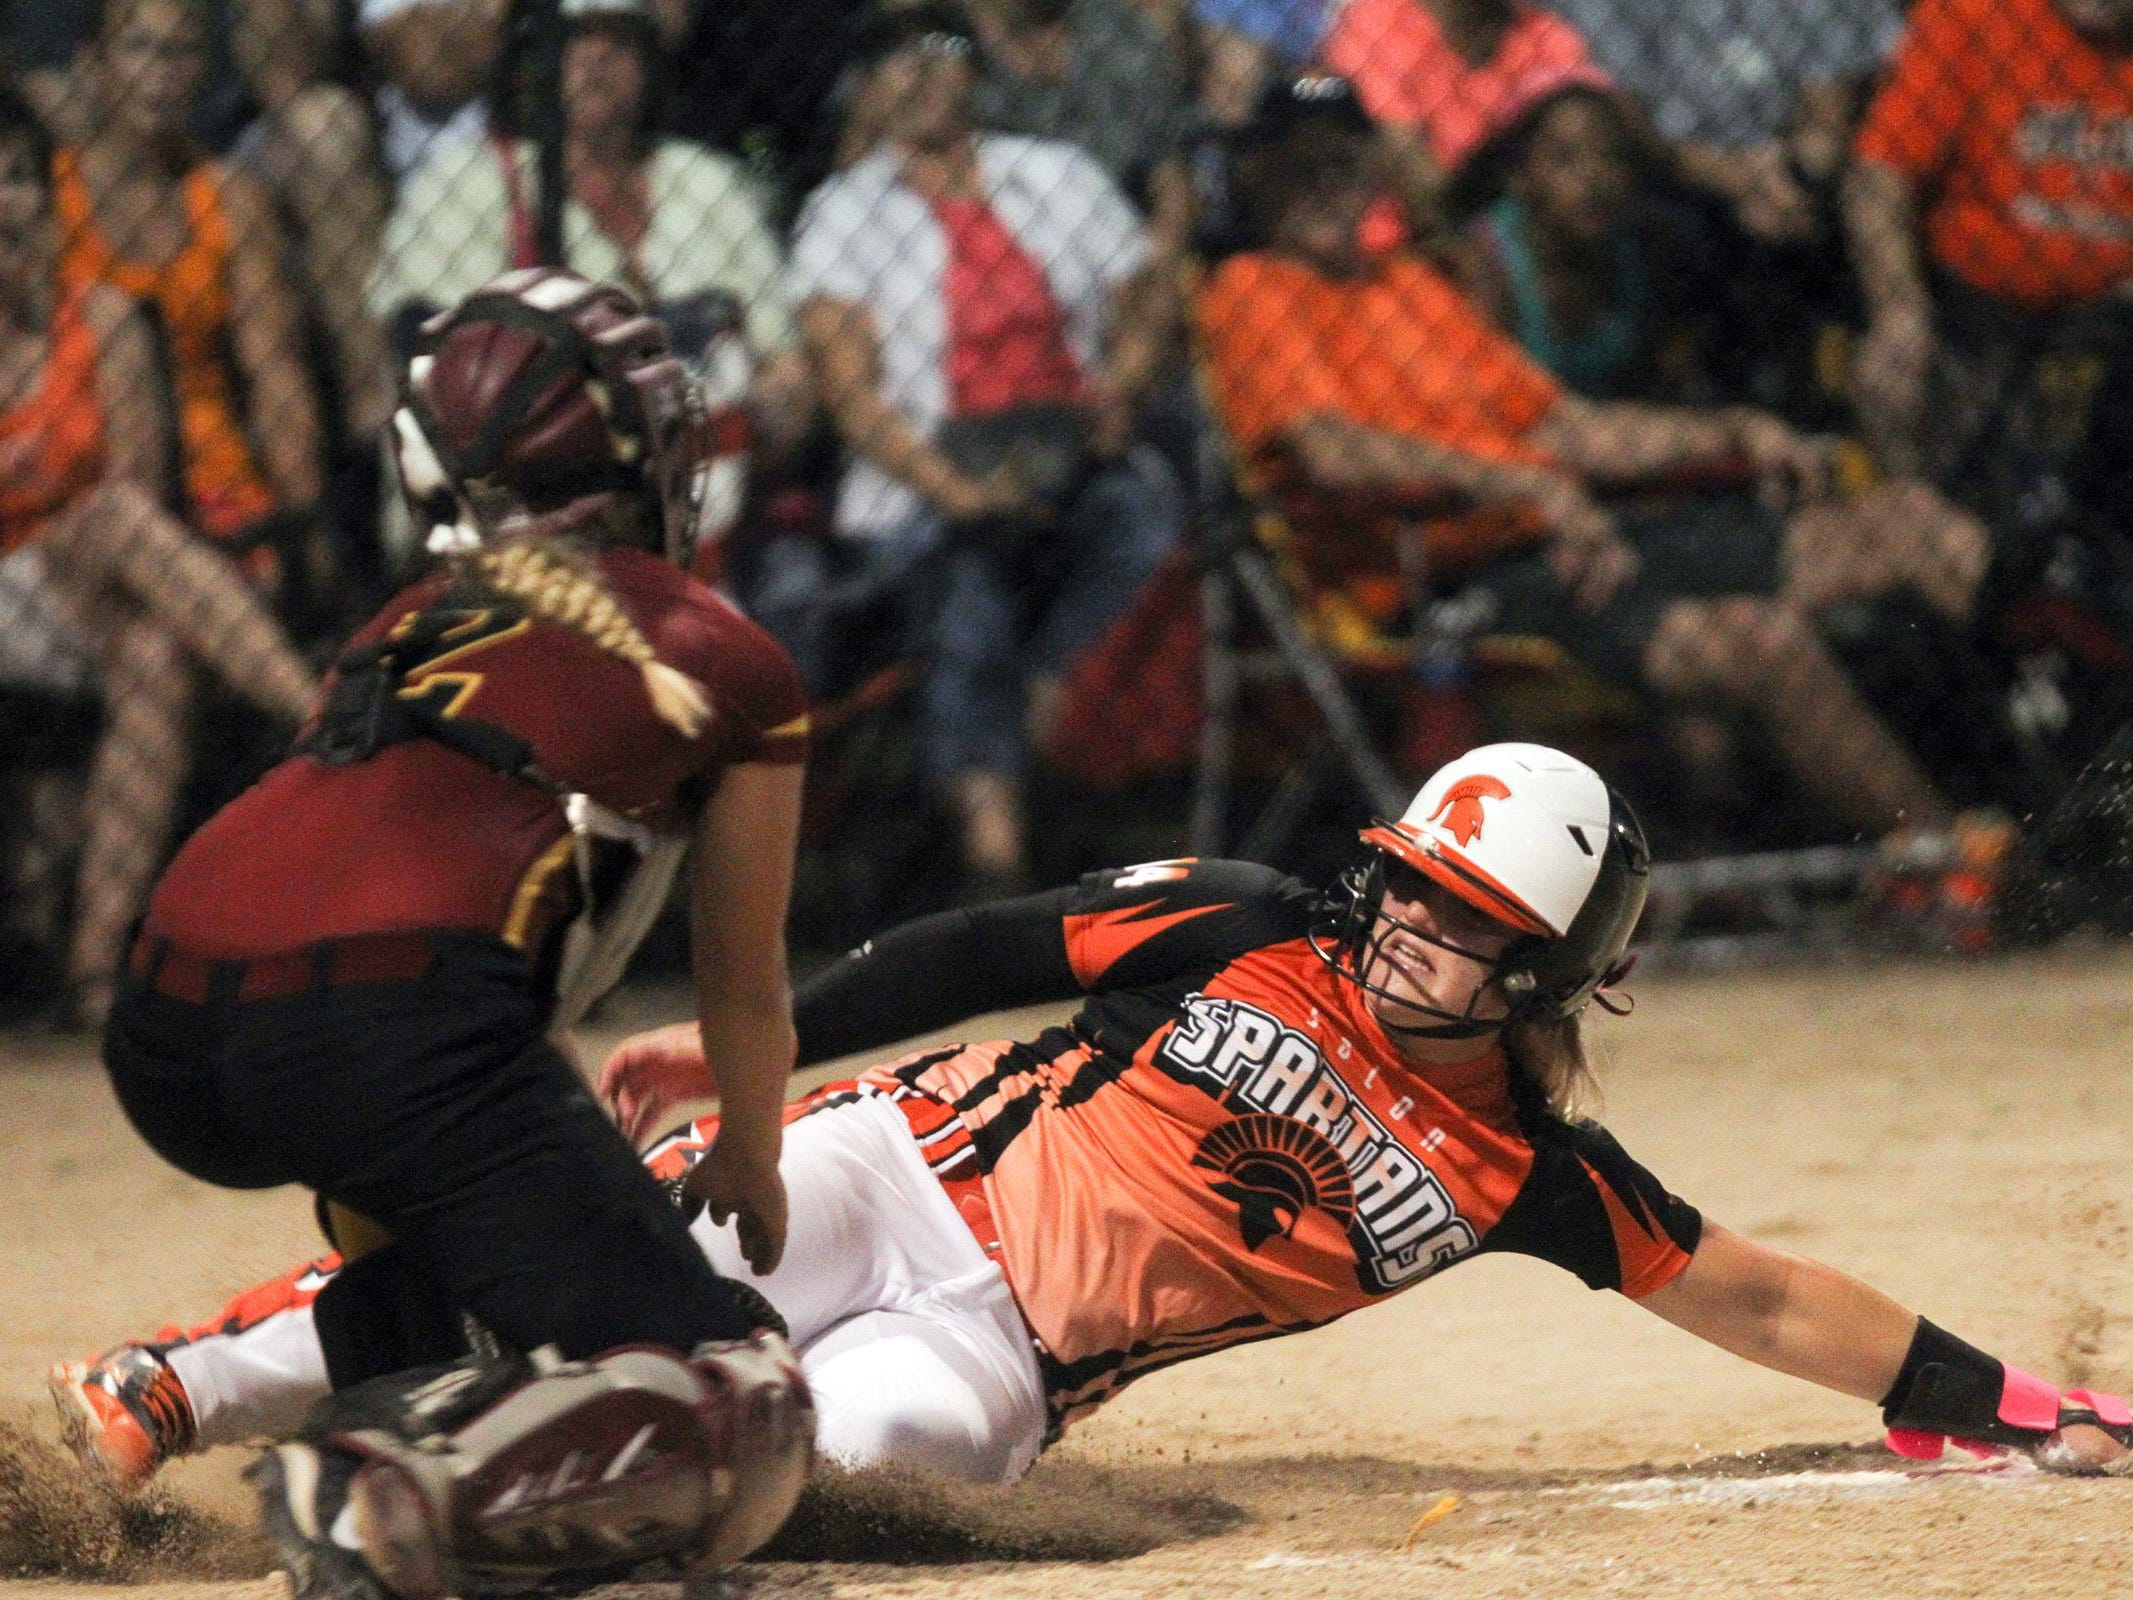 Solon's Ali Herdliska gets tagged out at home plate during the Spartans' Class 3A regional championship against PCM, Monroe in Grinnell on Monday, July 13, 2015. David Scrivner / Iowa City Press-Citizen